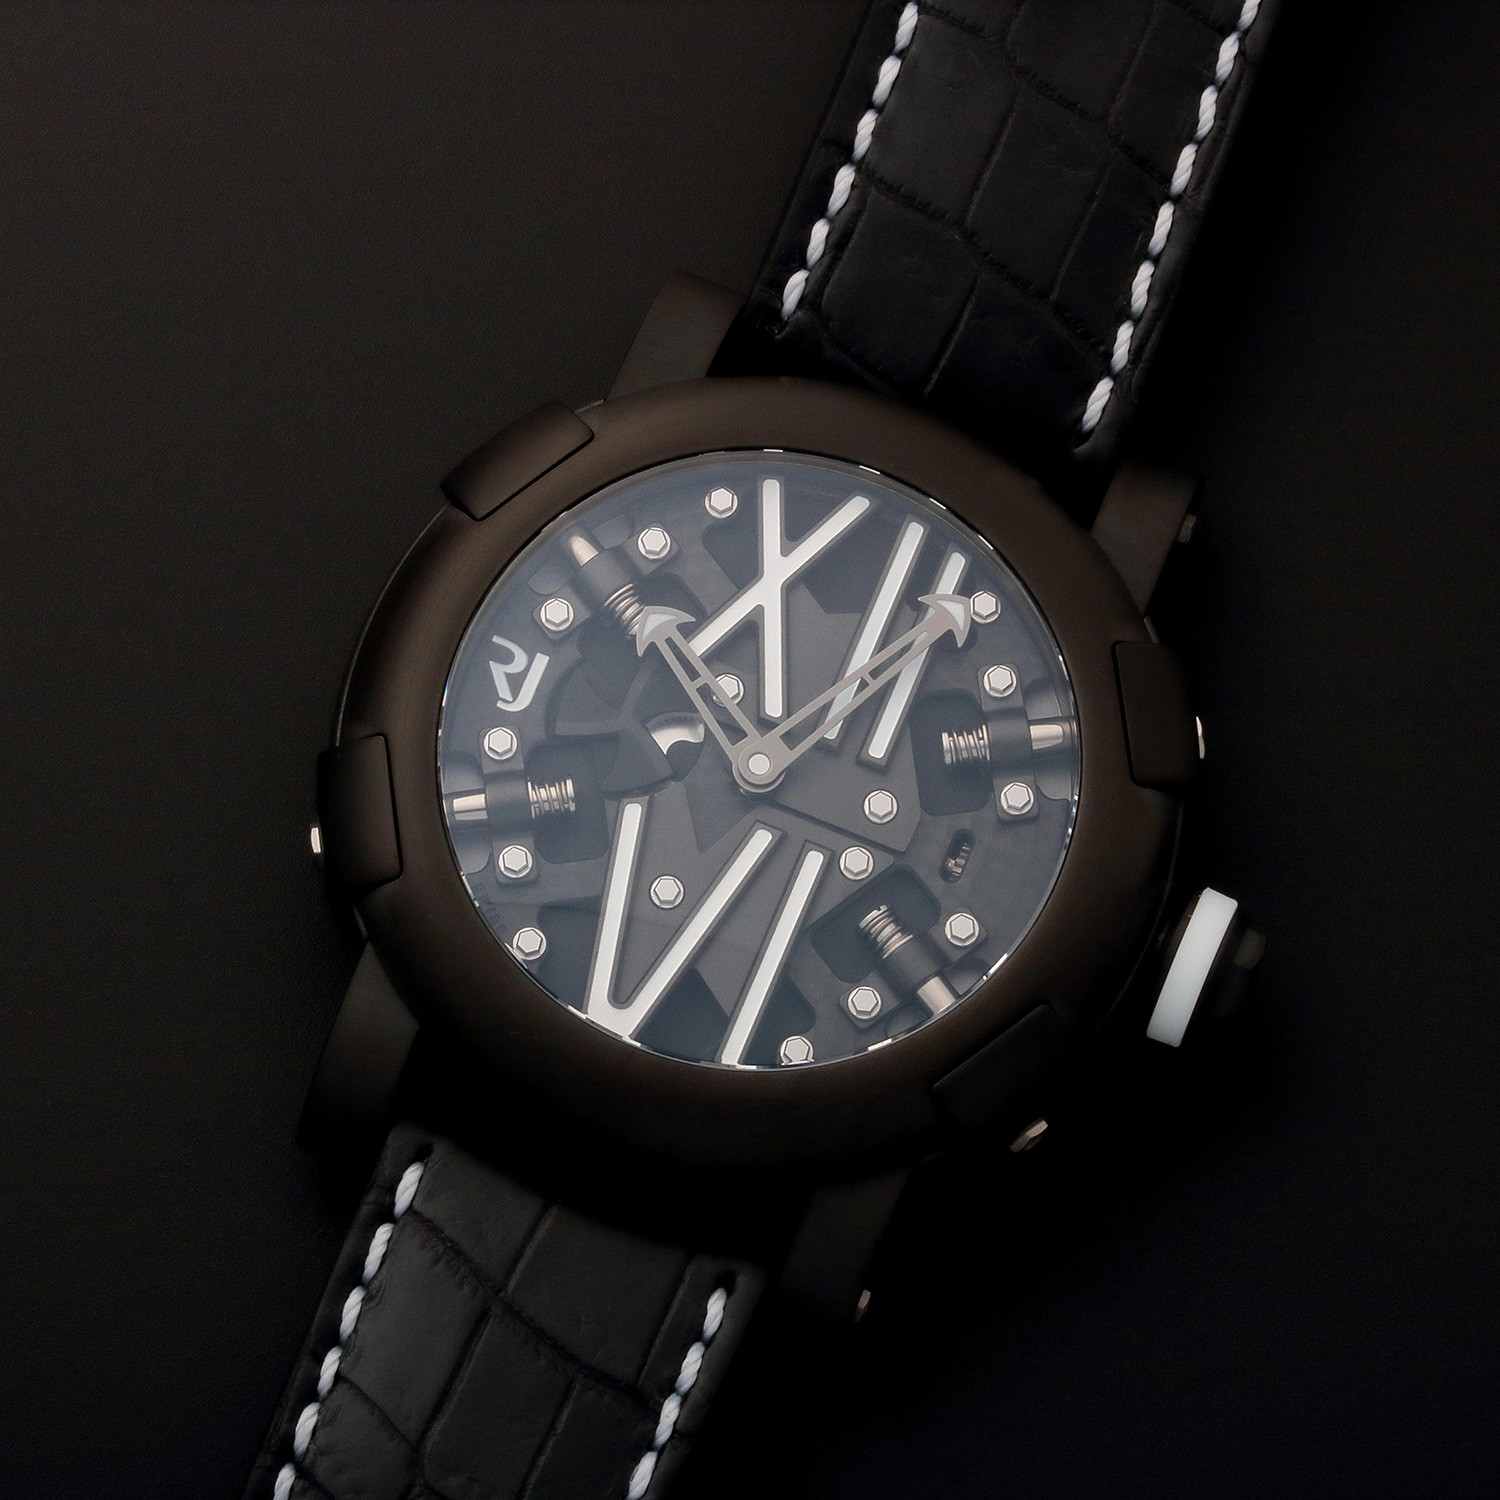 Romain jerome dna automatic limited edition rj t au for Jerome girard